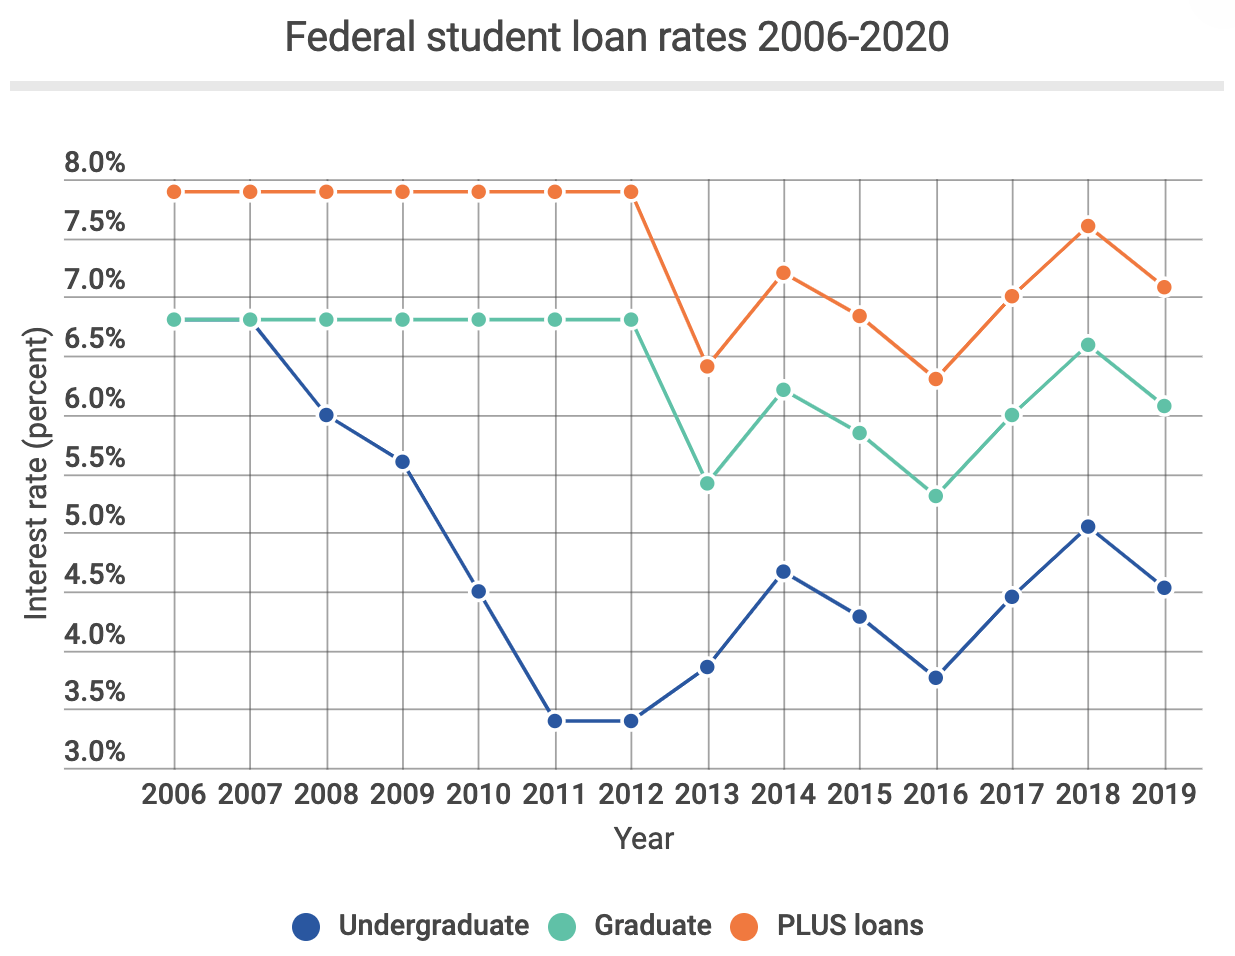 Average Federal student loan rates 2006-2020